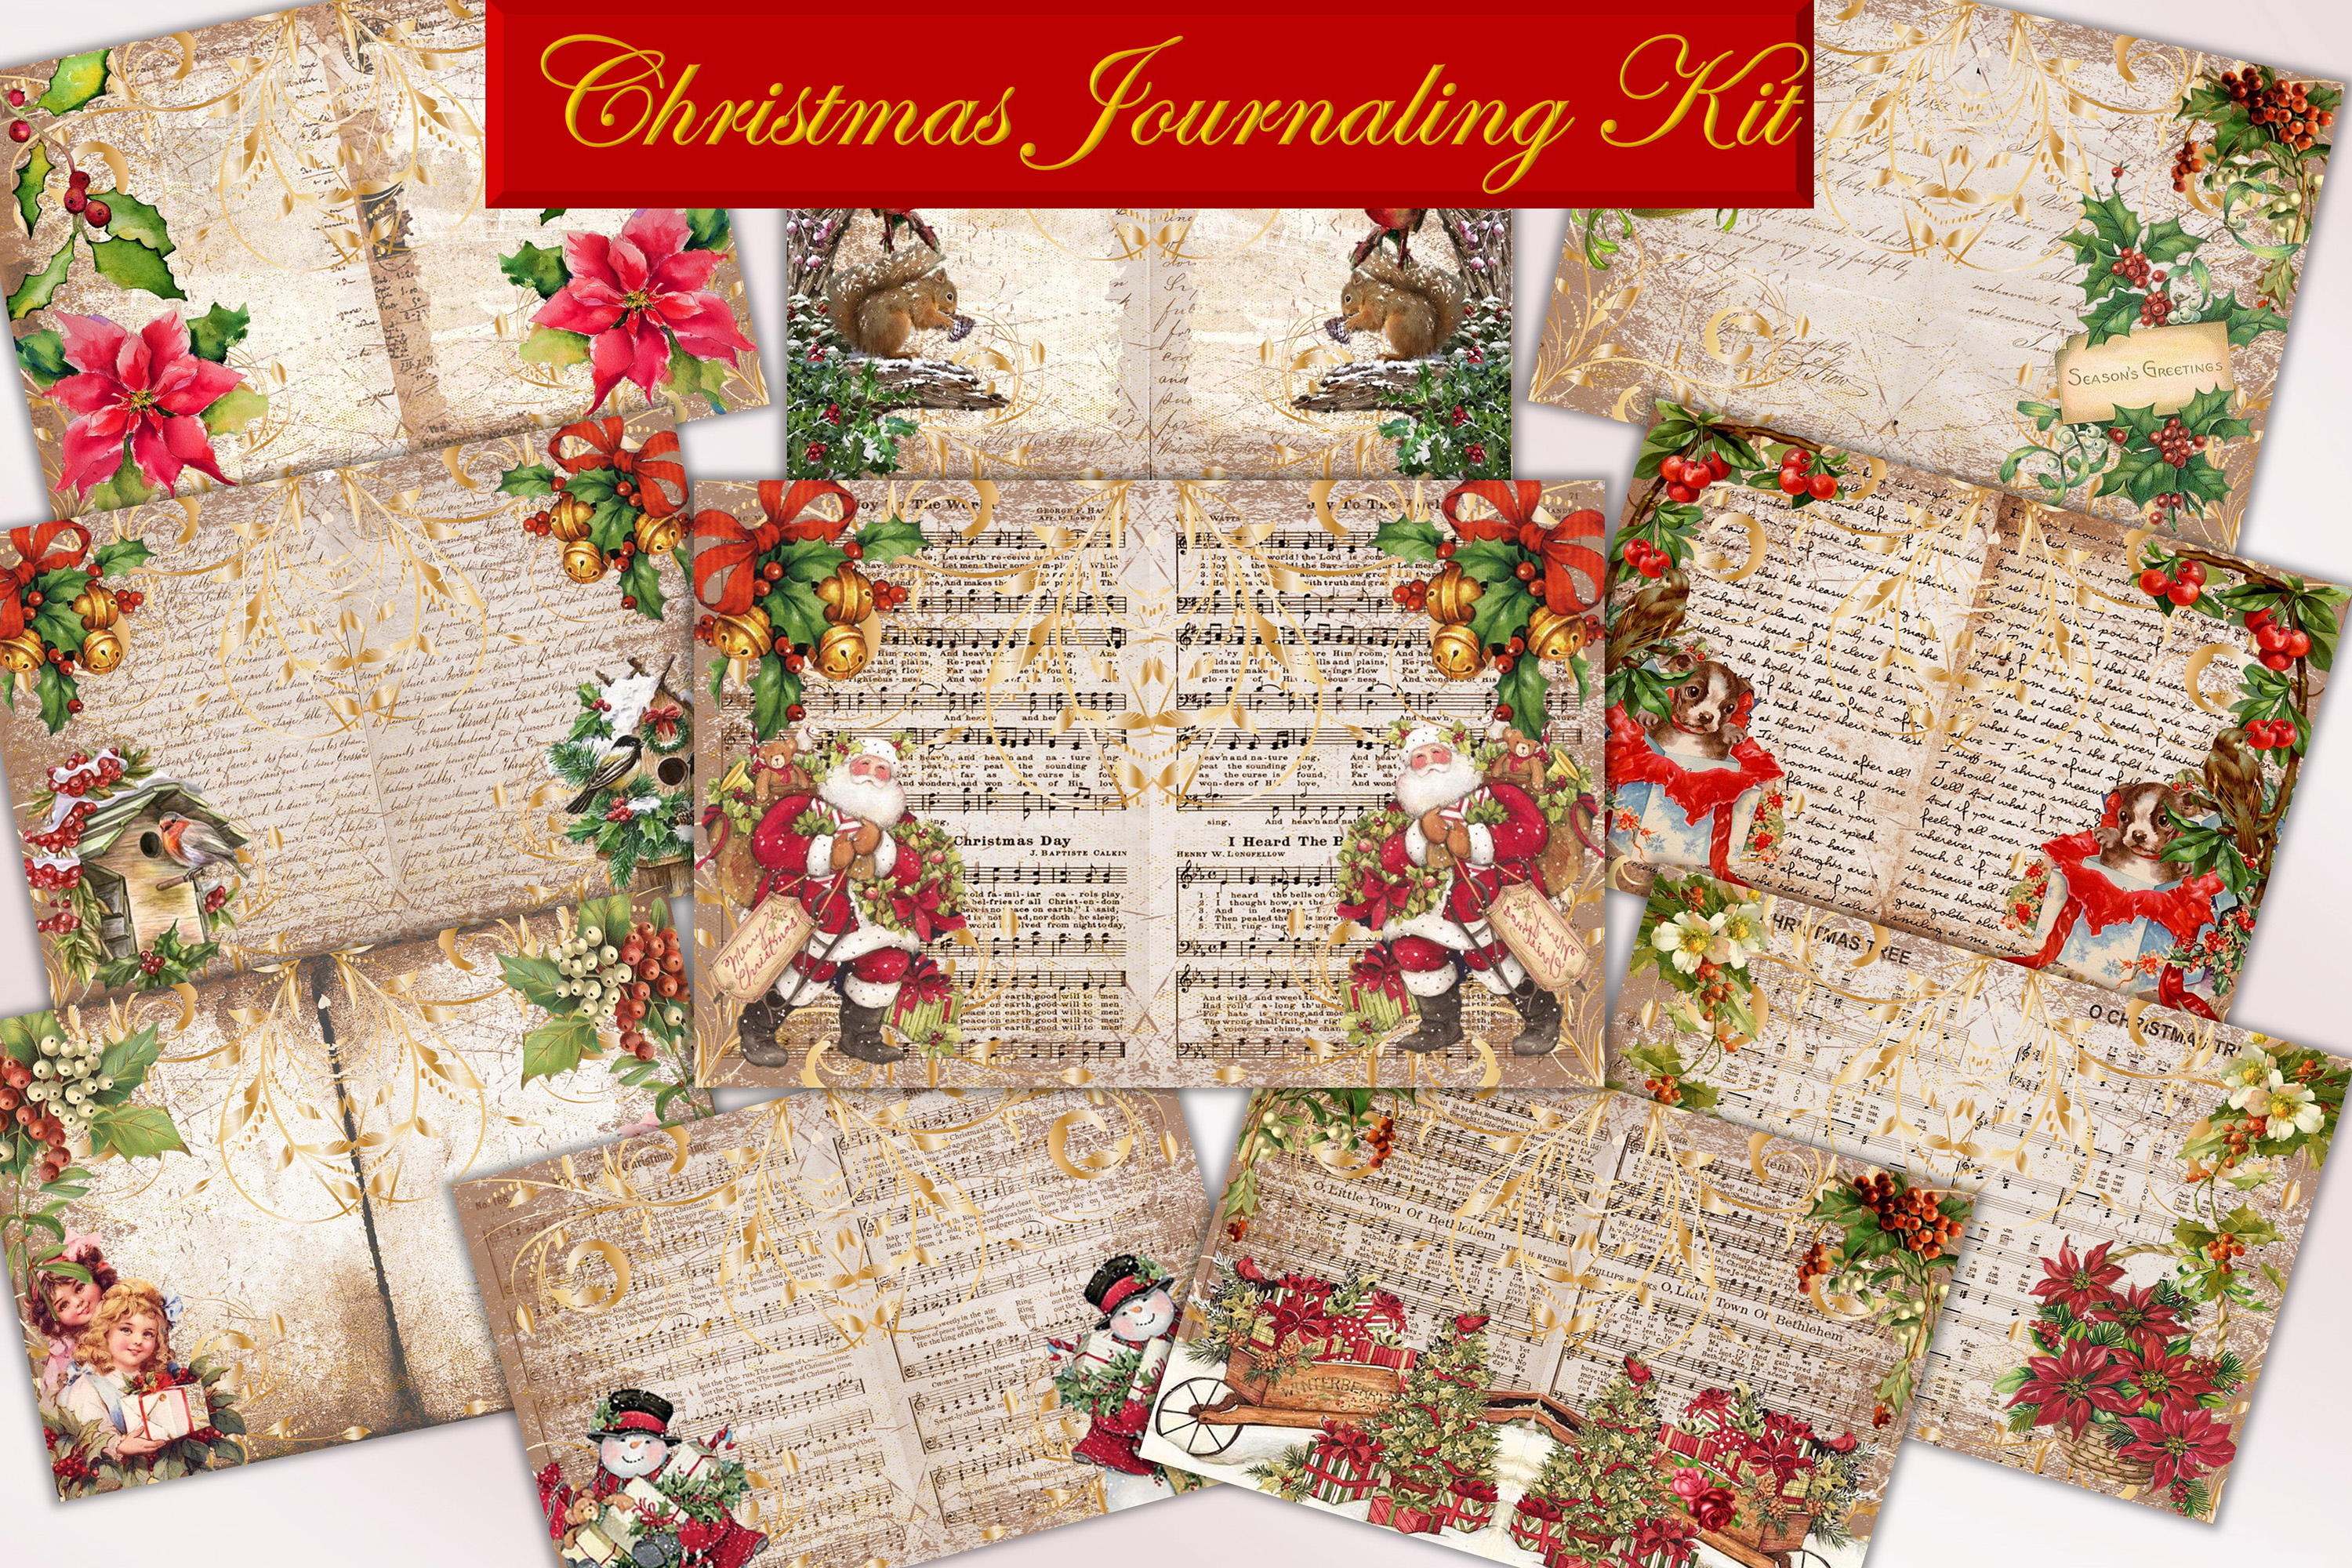 Download Free Vintage Christmas Journal Kit Ephemera Graphic By The Paper for Cricut Explore, Silhouette and other cutting machines.